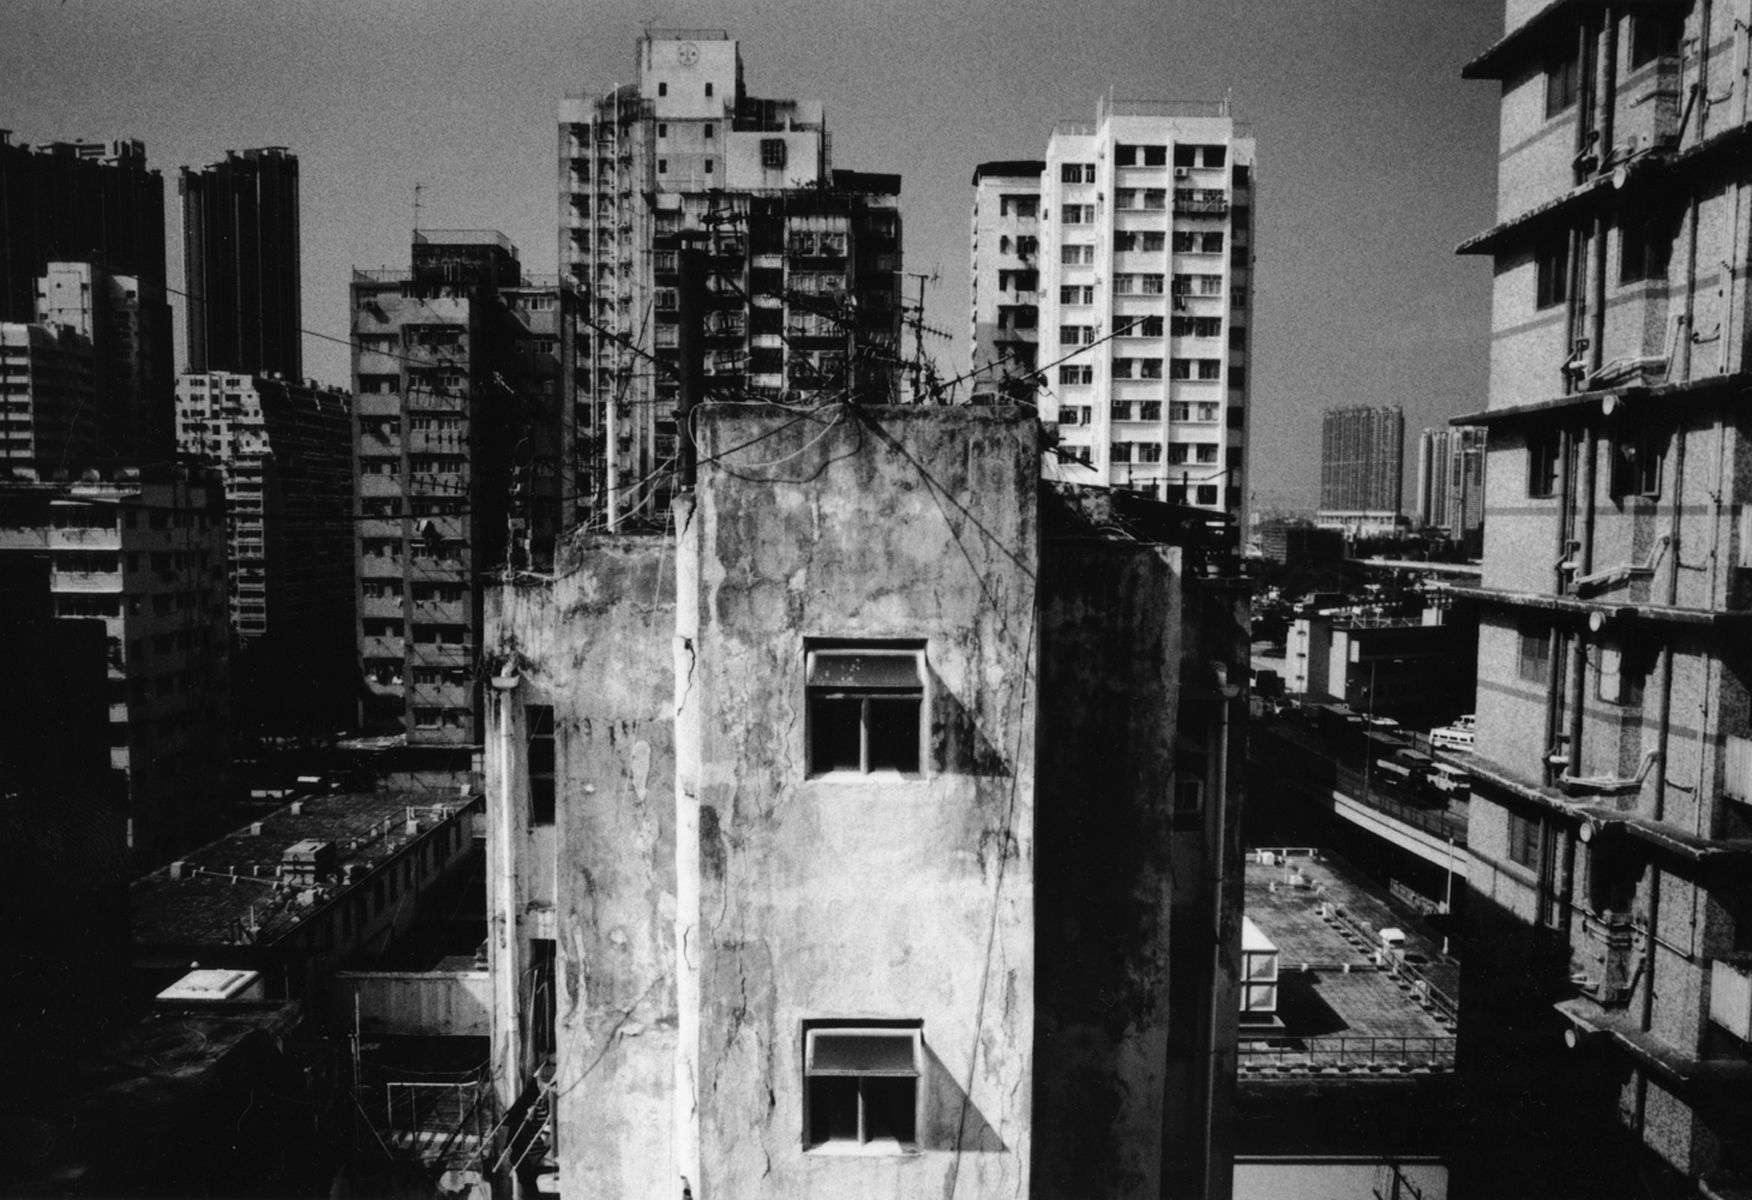 The lower econimic classes living in Hong Kong struggle to find affordable housing, as space is often limited. It is quite common for owners of the building, property managers, or landlords to allow tenants to build illegal appartments on top of roofs of the buildings. The Hong Kong government is now tearing down such habitats and fining the owners of the buidlings. Hong Kong Island